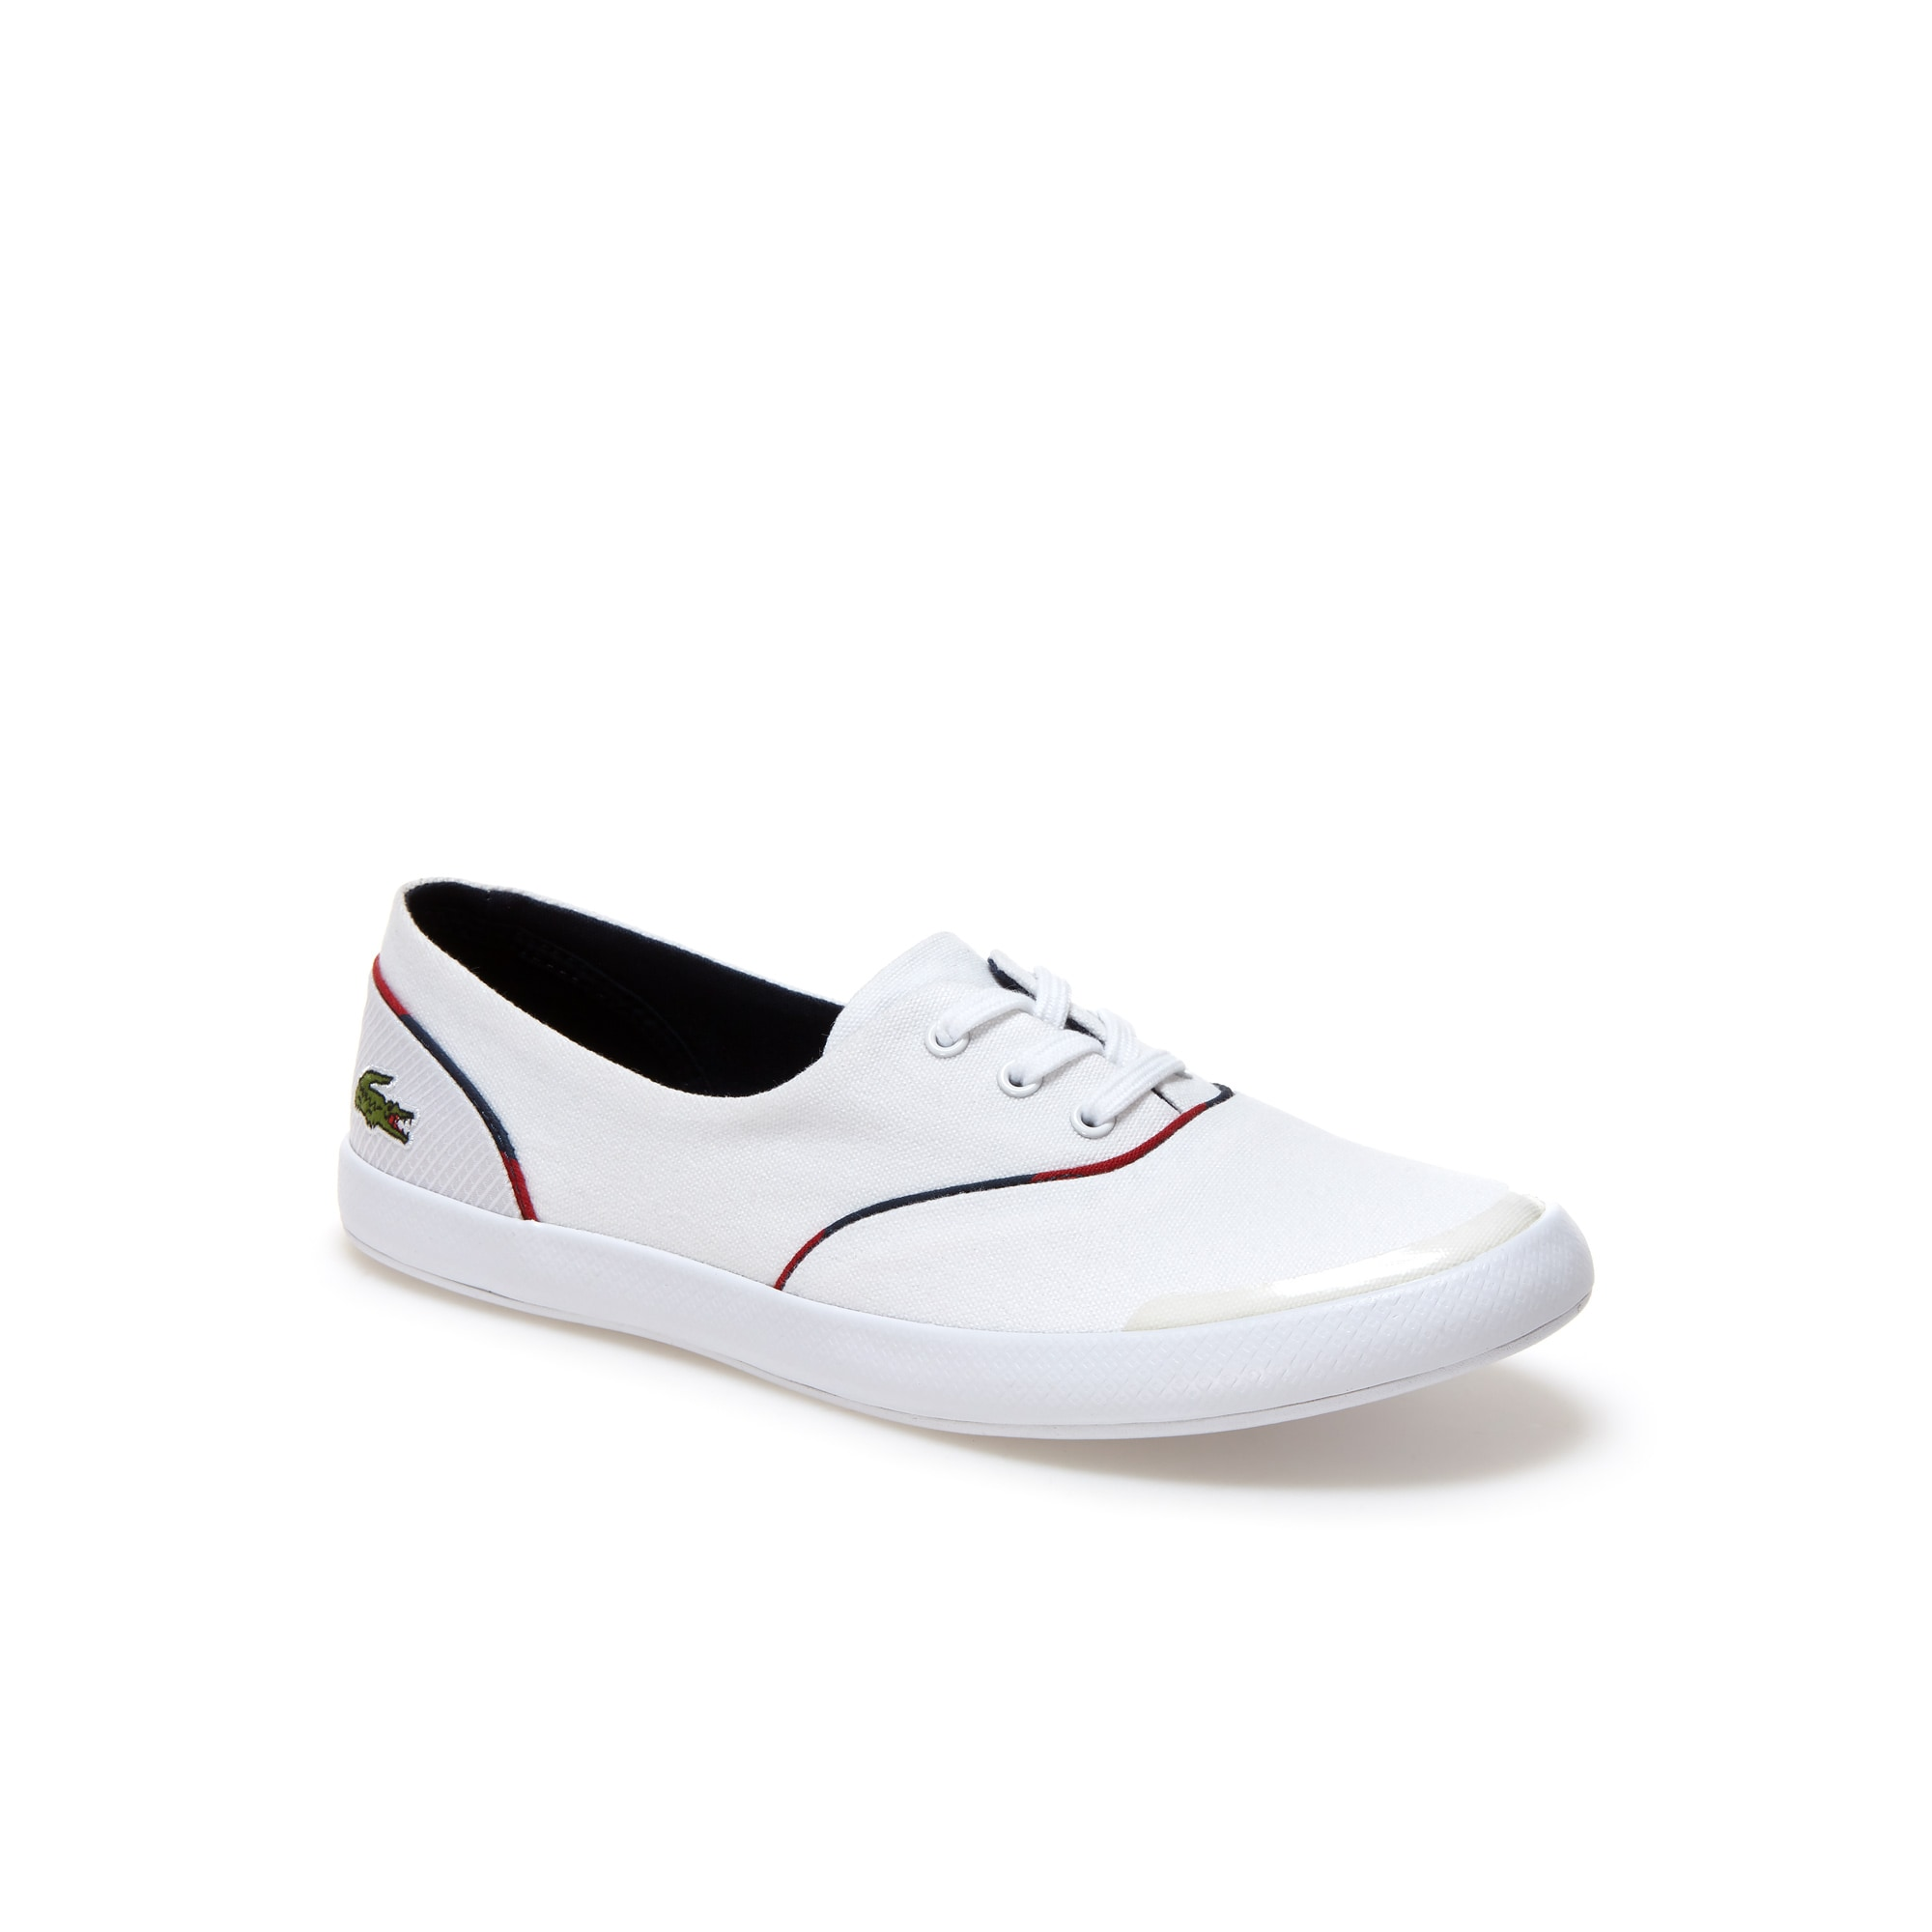 bca64f6be13b6 Women s Lancelle 3 Eye Canvas Trainers